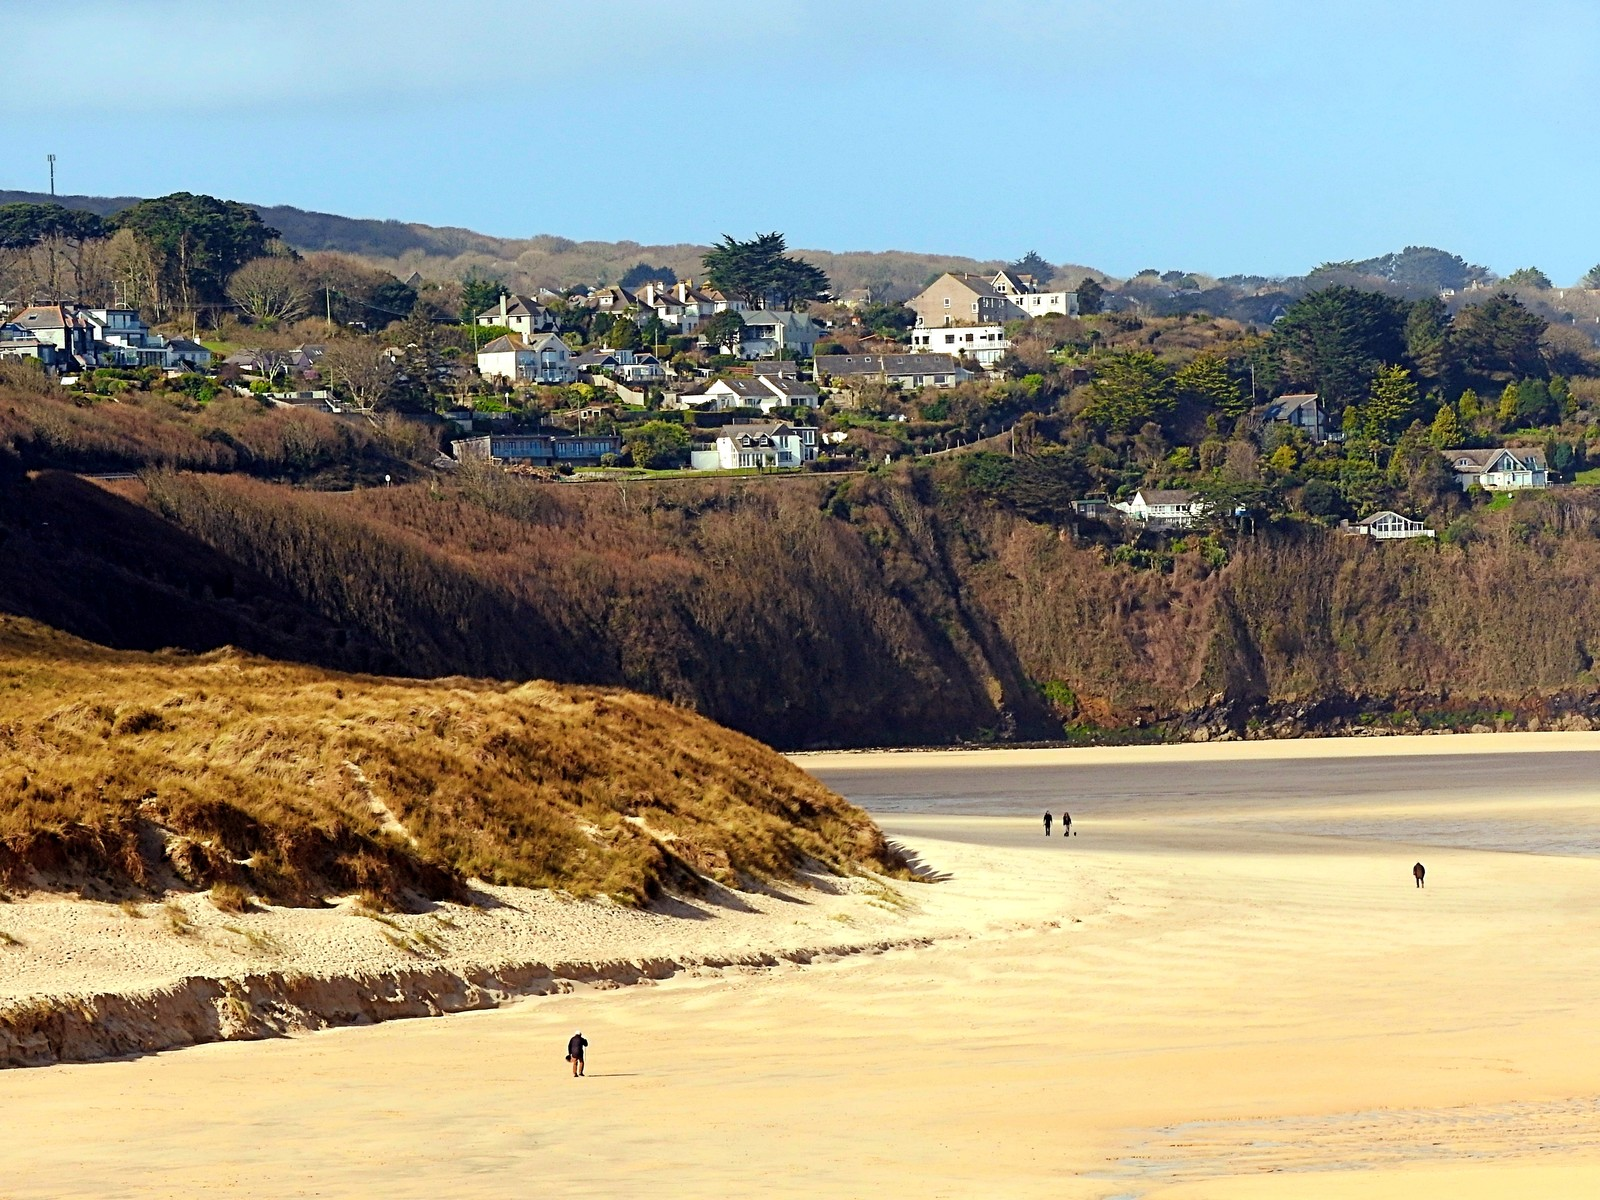 Looking across the River Hayle and Porth kidney Sands towards Carbis Bay yesterday